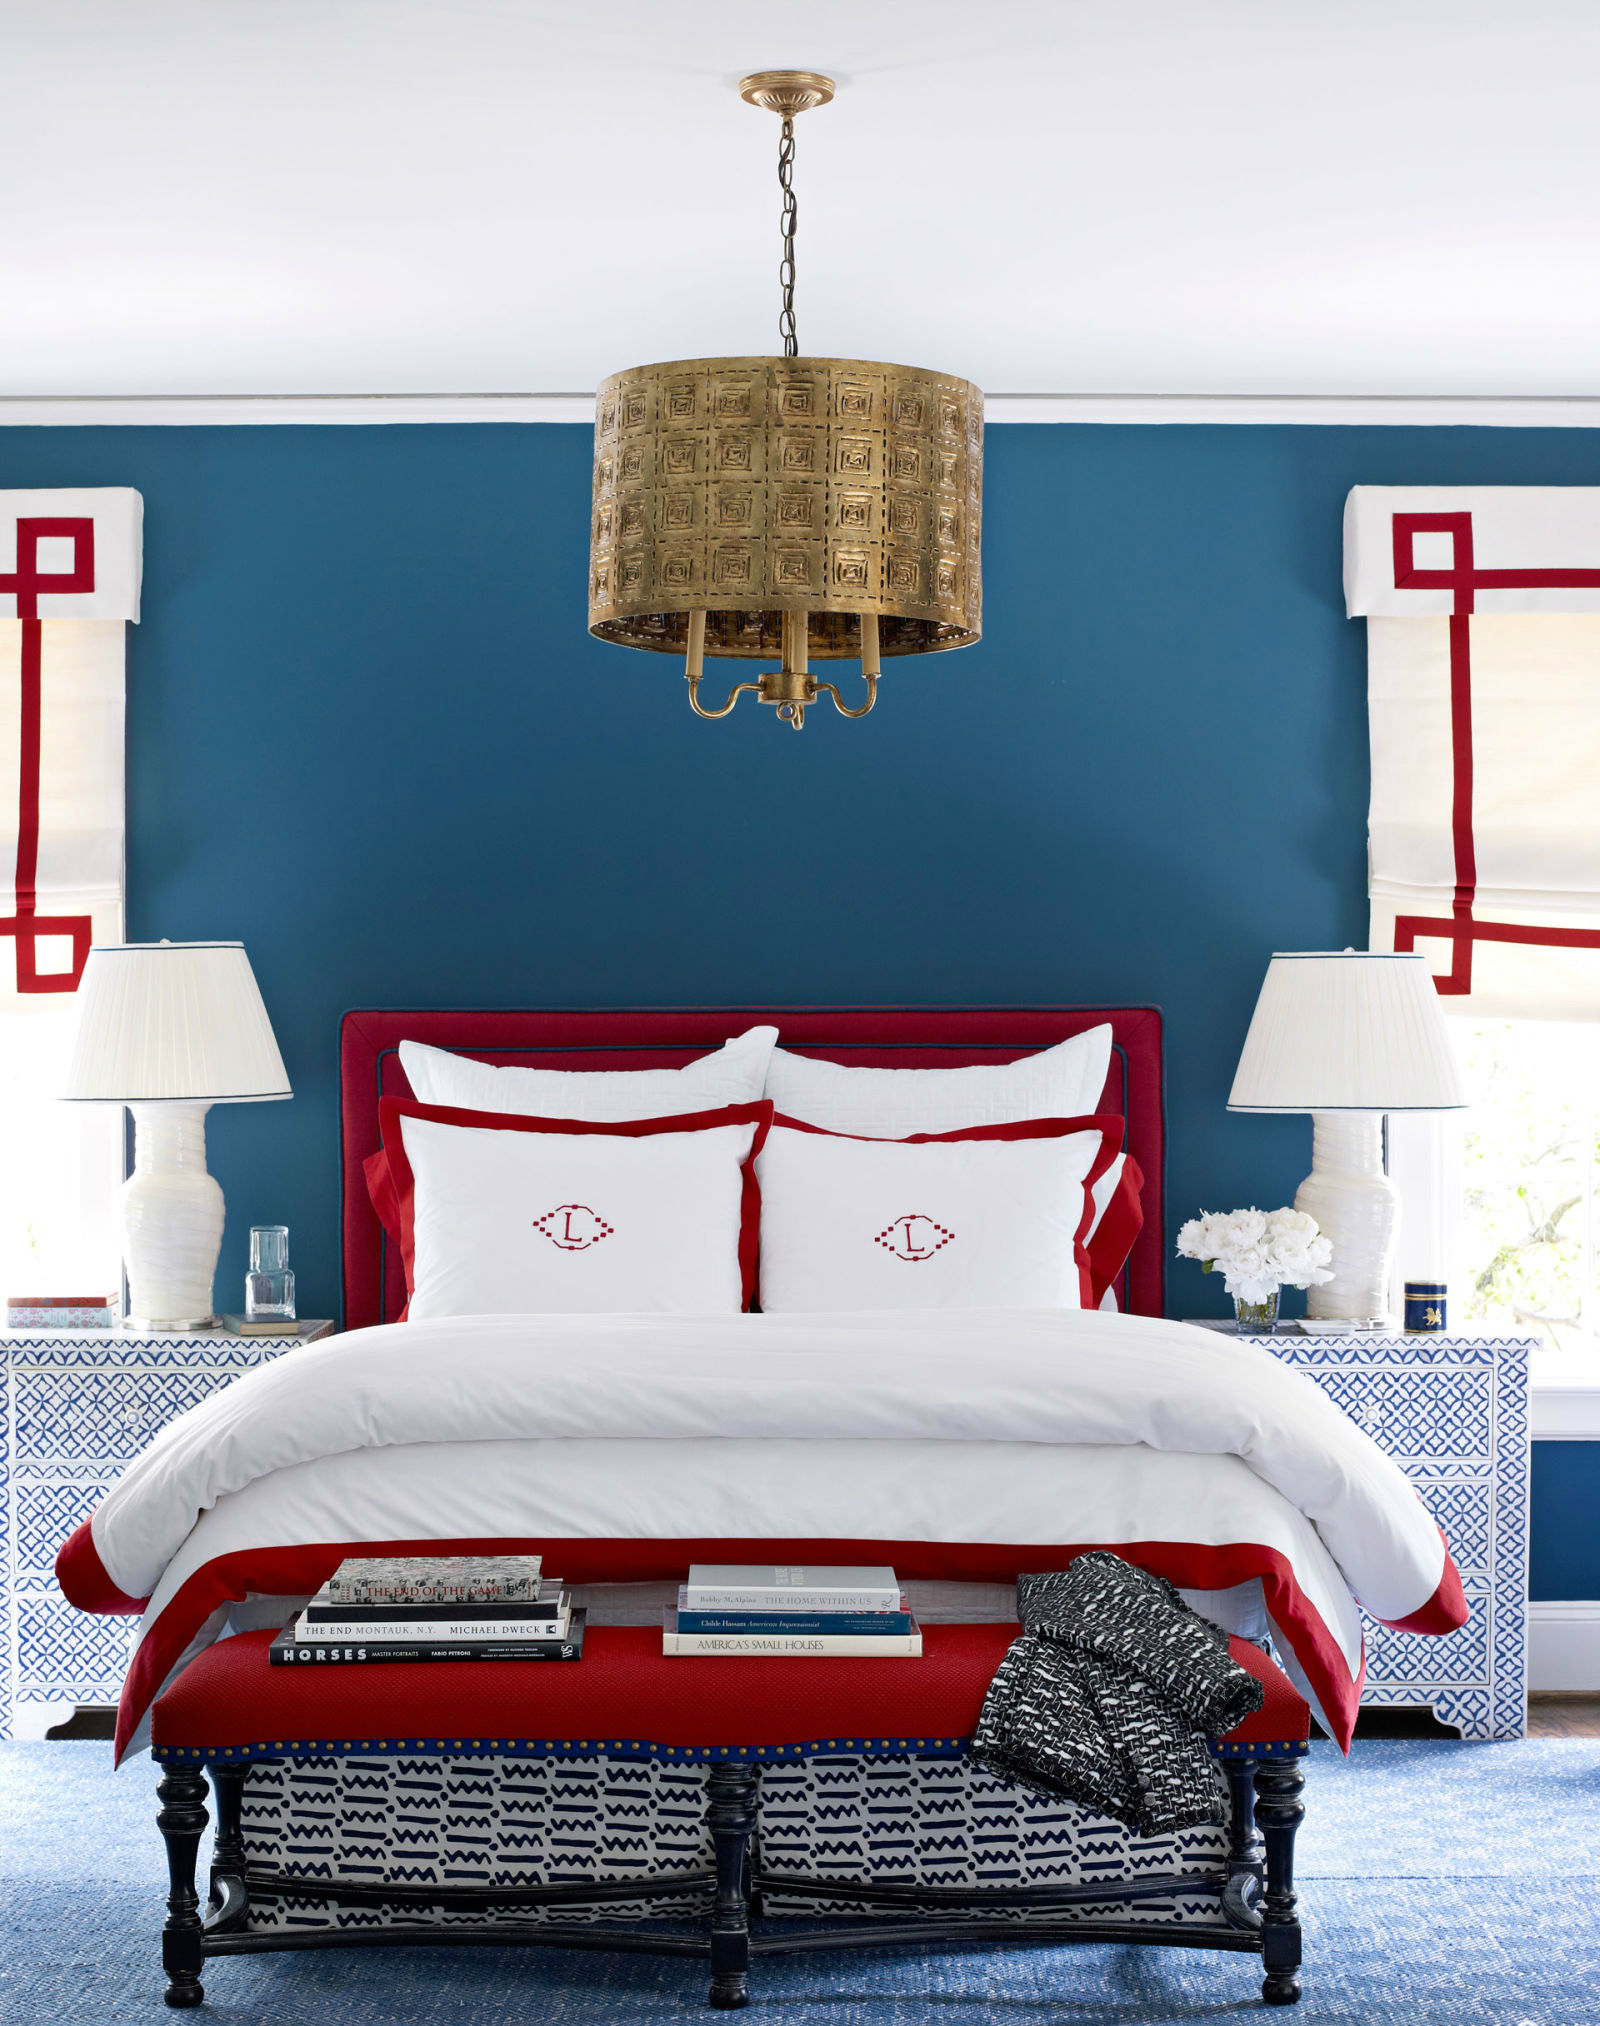 10 Chic Ways to Decorate in Red, White and Blue bedroom ideas